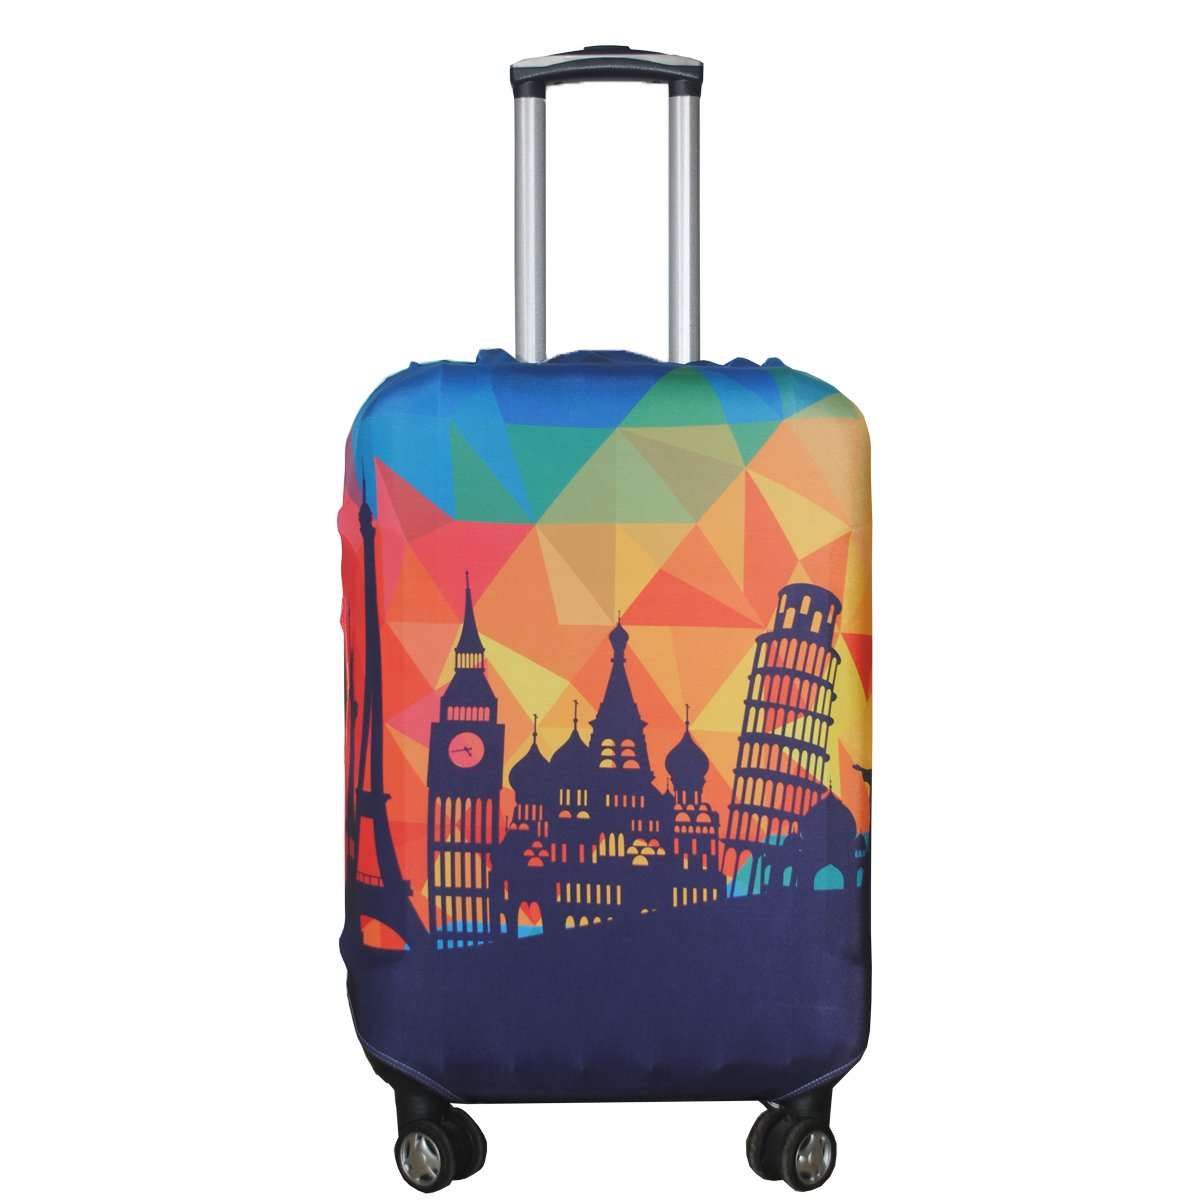 Explore Land Travel Luggage Cover Suitcase Protector Fits 18-32 Inch Luggage (Polkadot, M(23-26 inch luggage)) 10408002